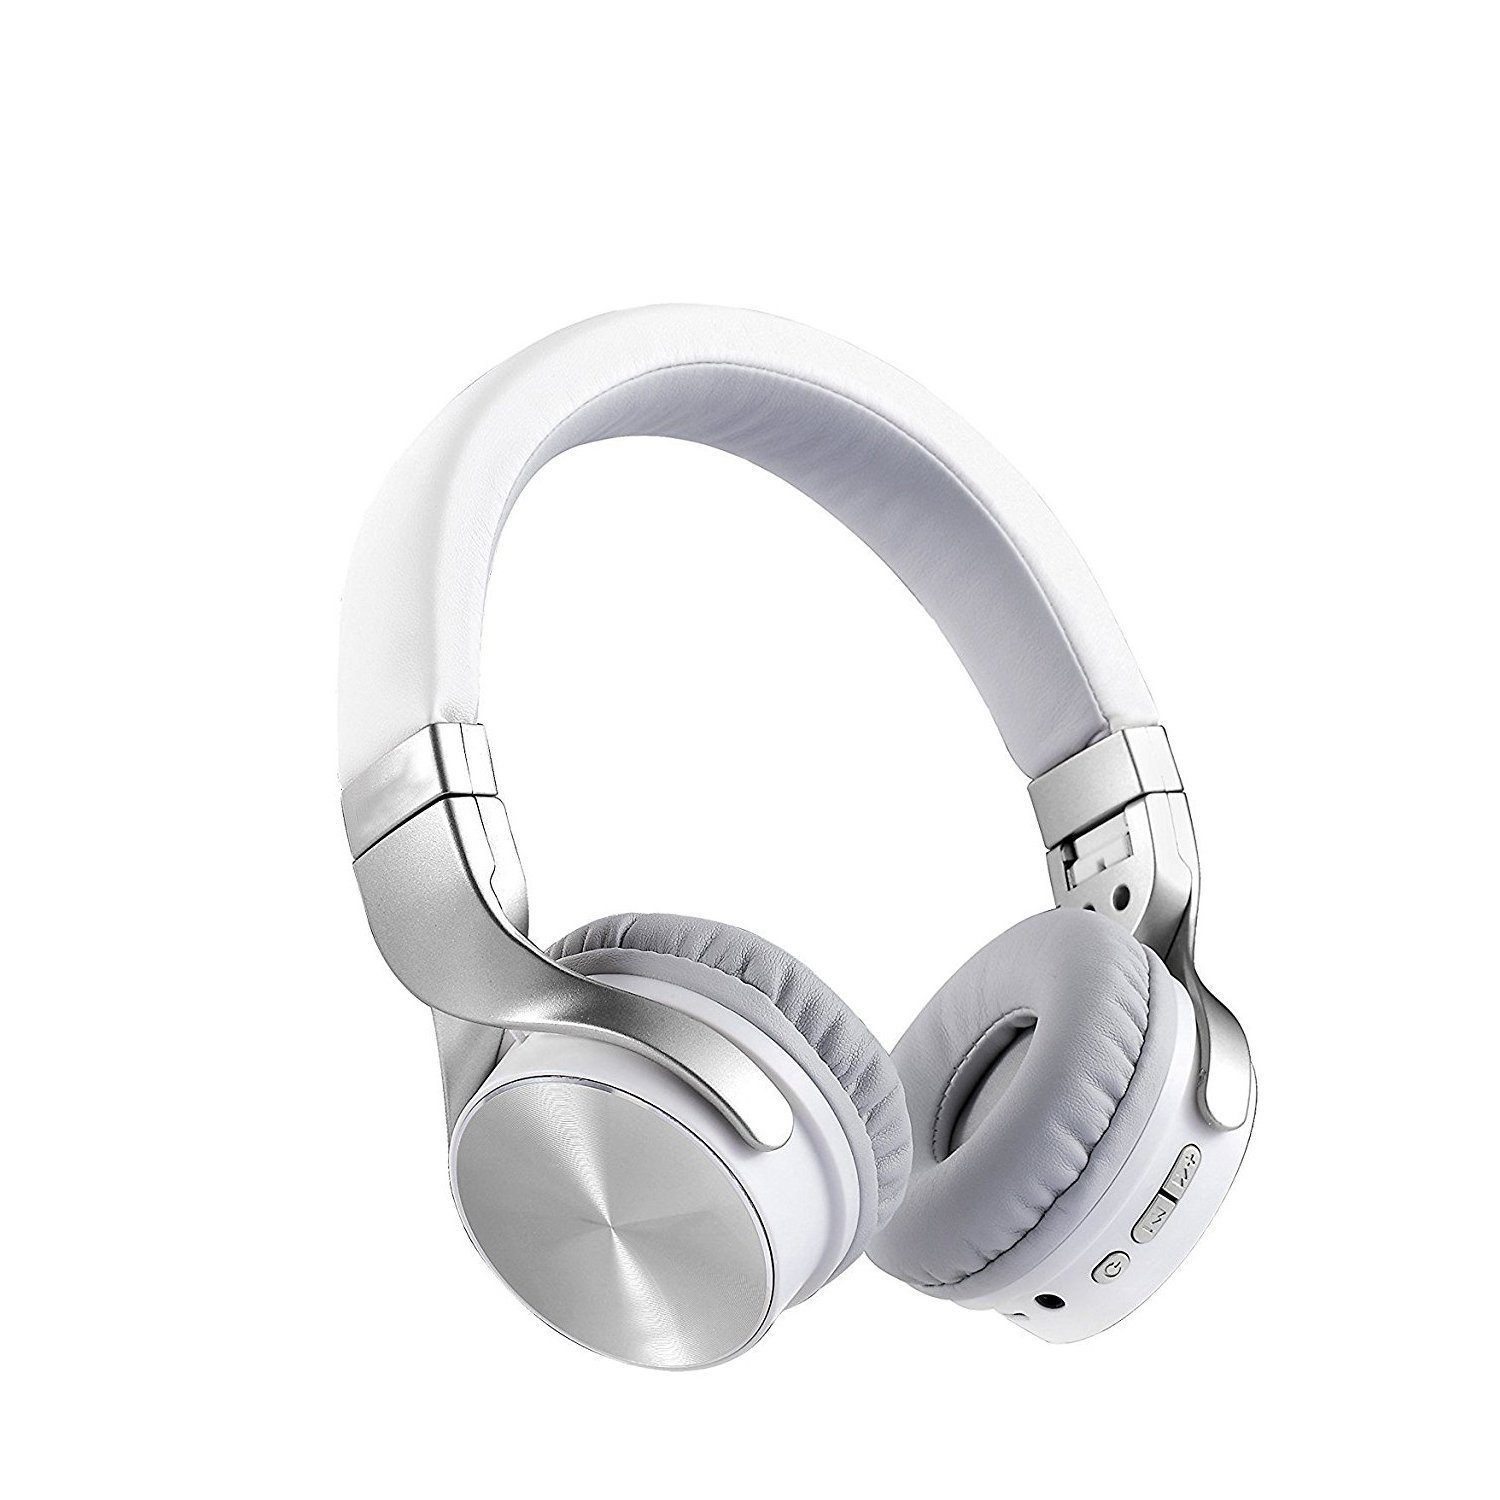 Wireless Bluetooth Headphones Over Ear, Adjustable Headset with Noise Isolation Memory-Protein Earmuffs, Hi-Fi Stereo Foldable Headphone with Mic, Perfect for TV Computer iPhone(Silver)